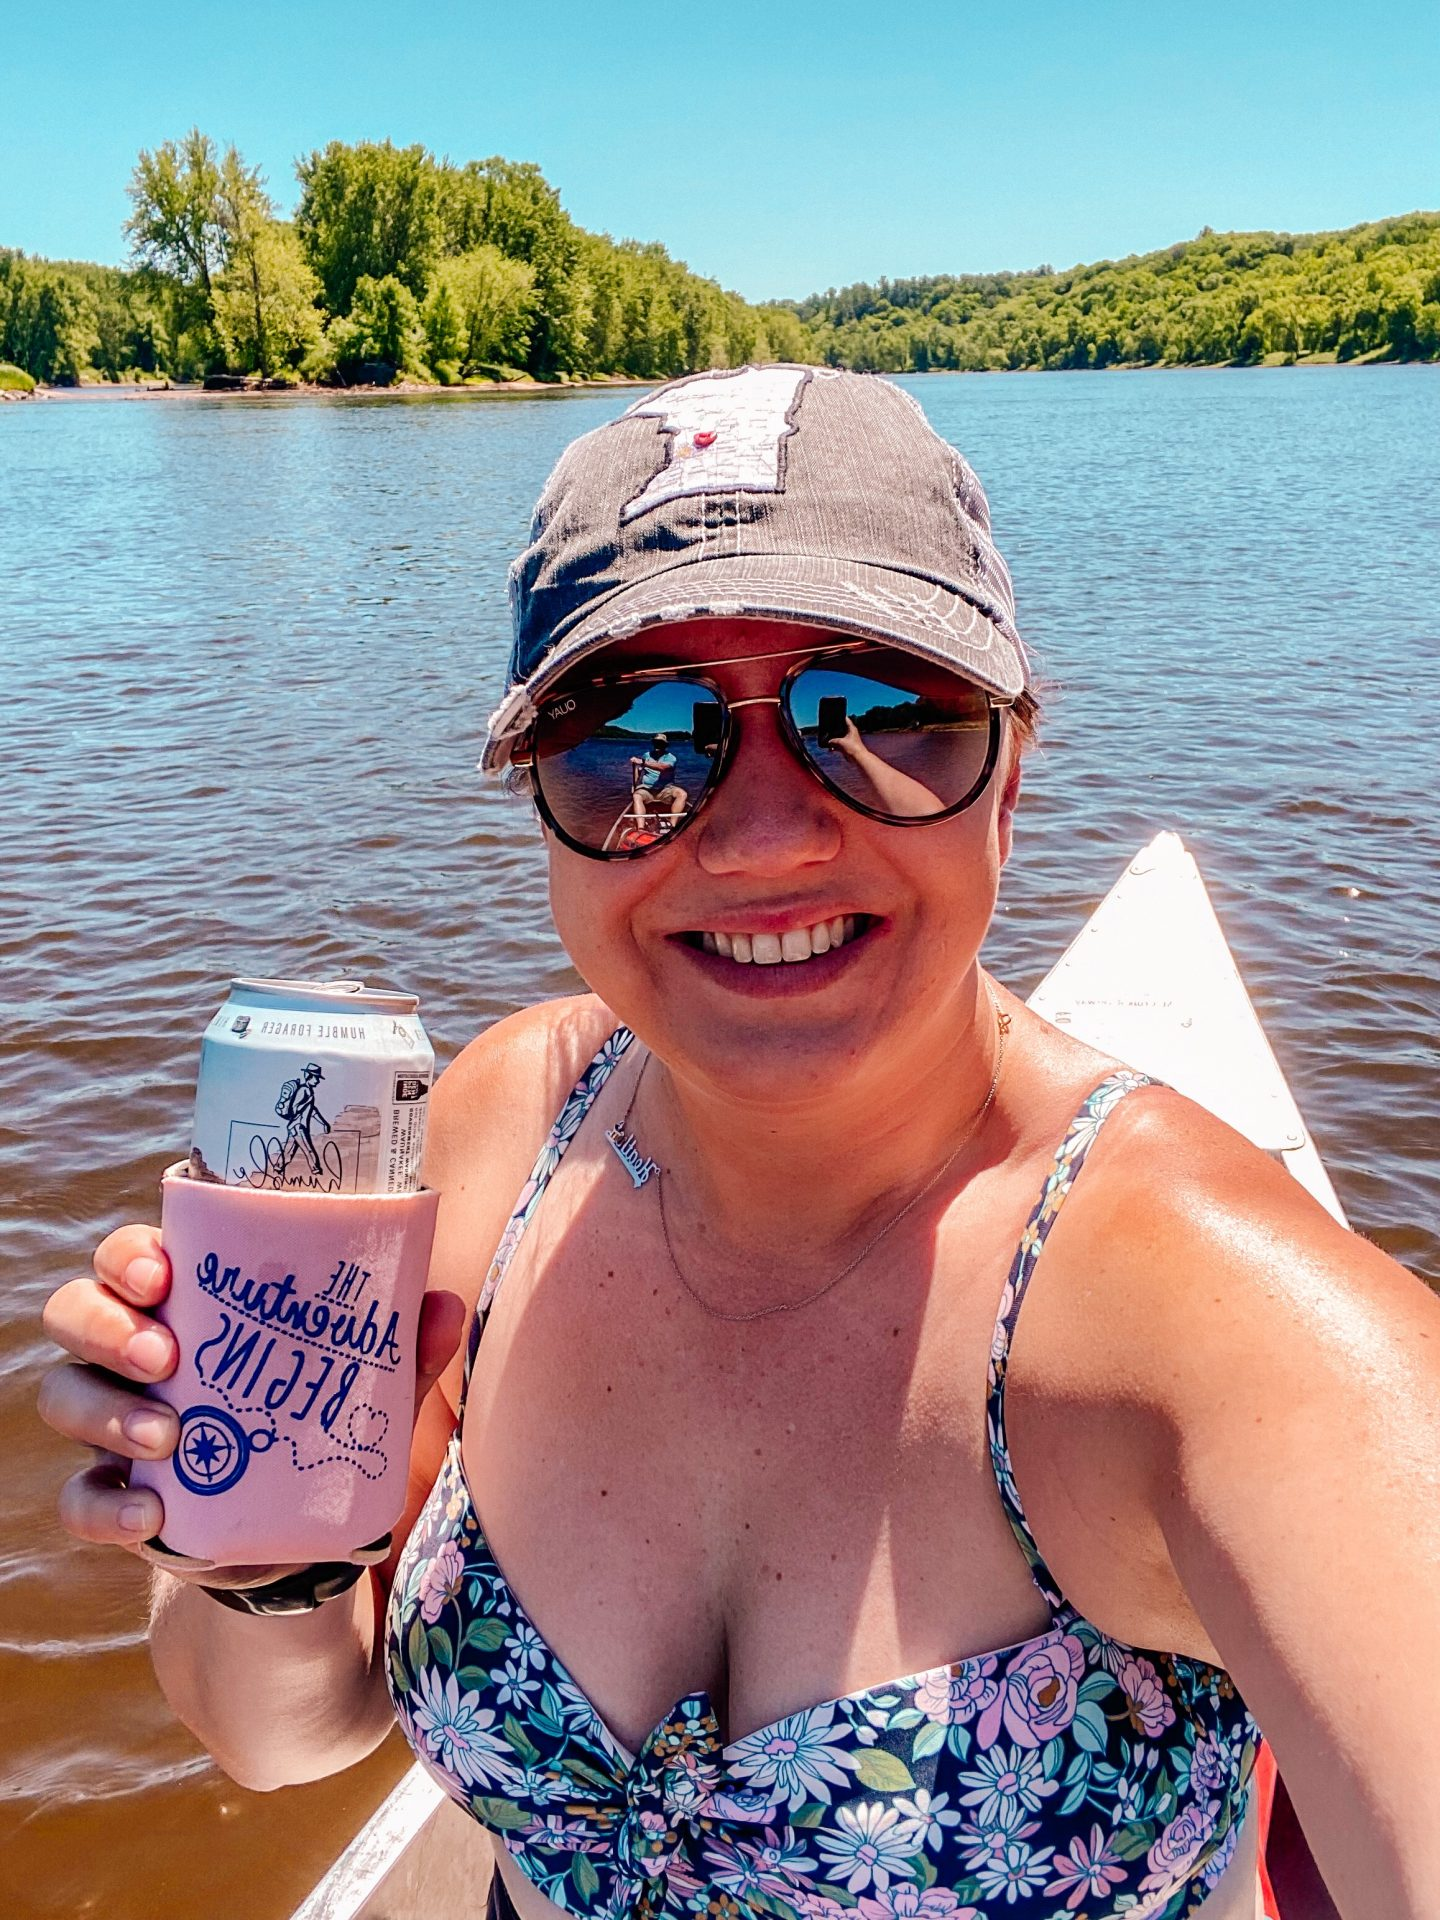 woman smiling with a baseball hat, sunglasses and a bikini on in a canoe while holding up a beer